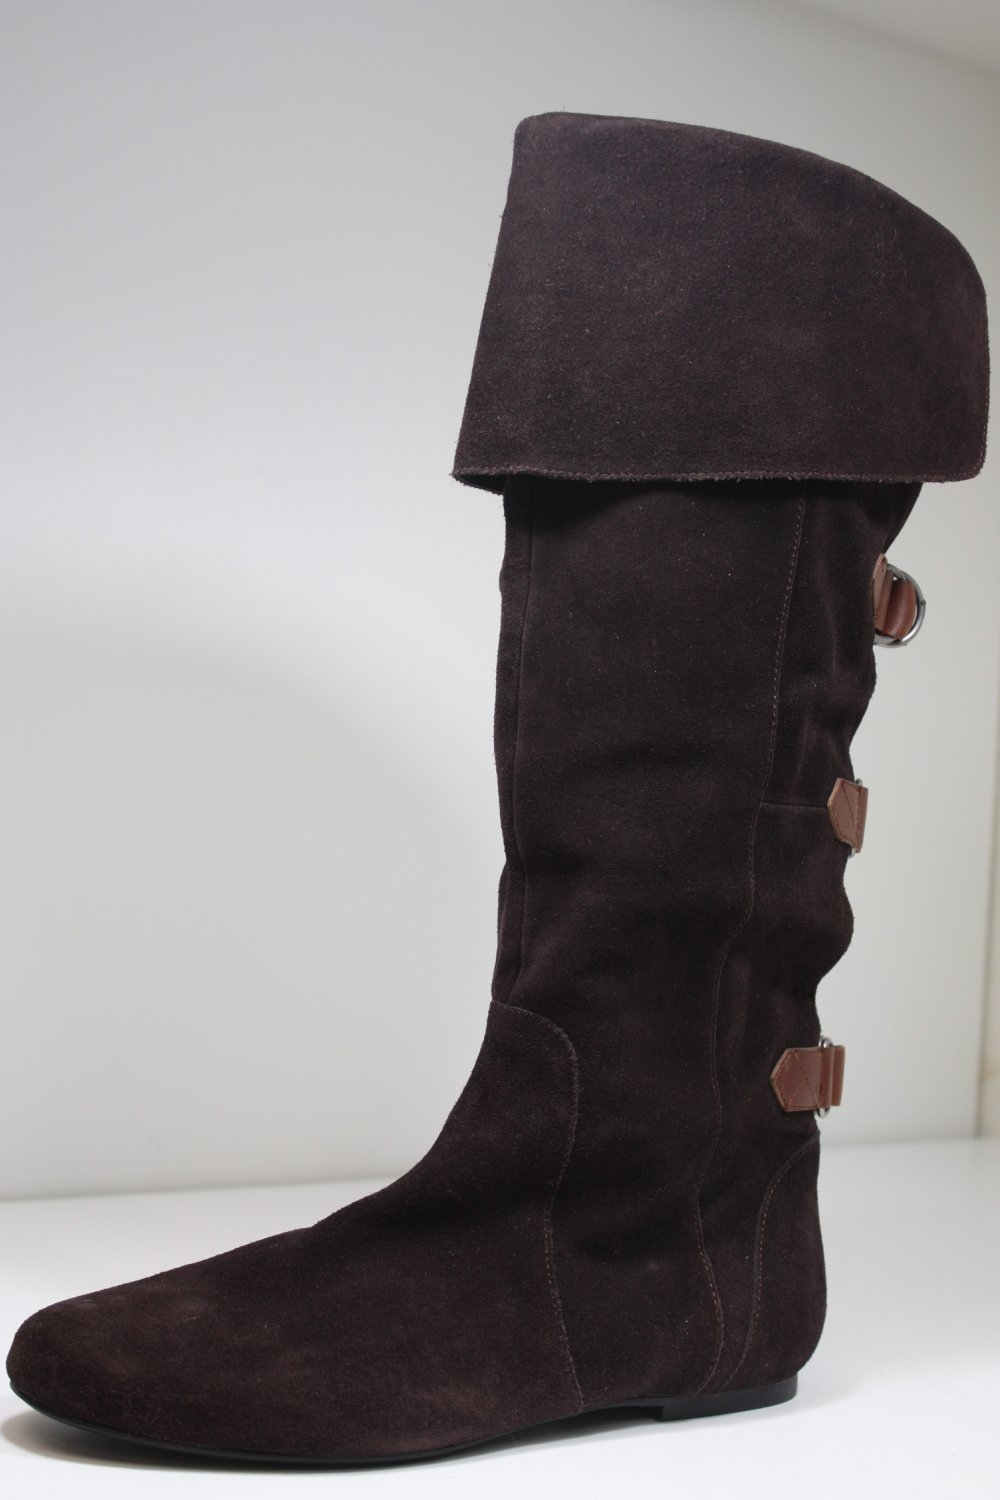 Dolce Vita  Boots Dark Brown Shoes US 9 $169